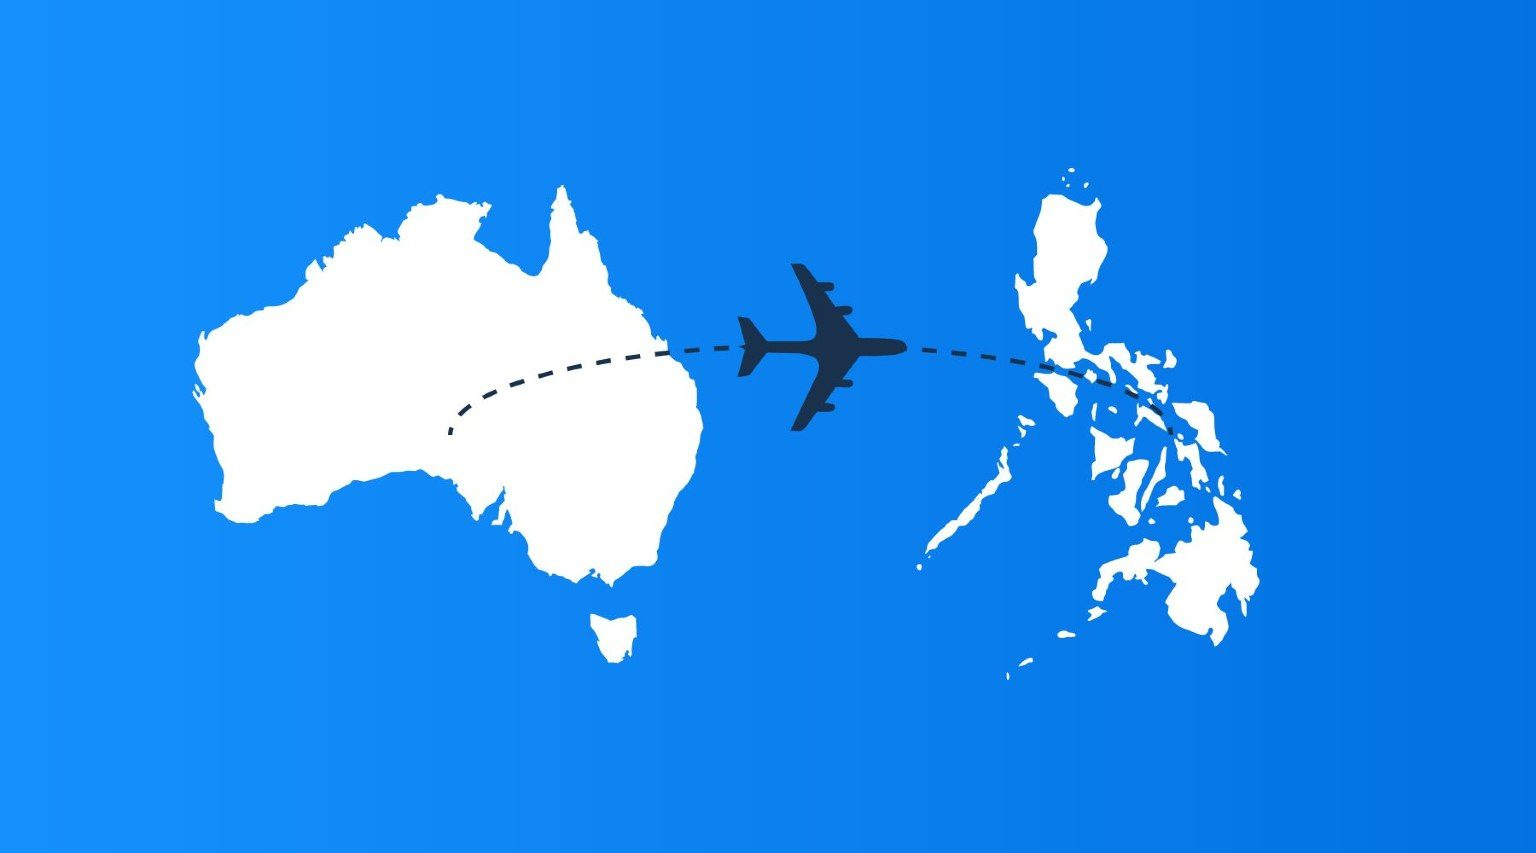 From Australia to the Philippines map